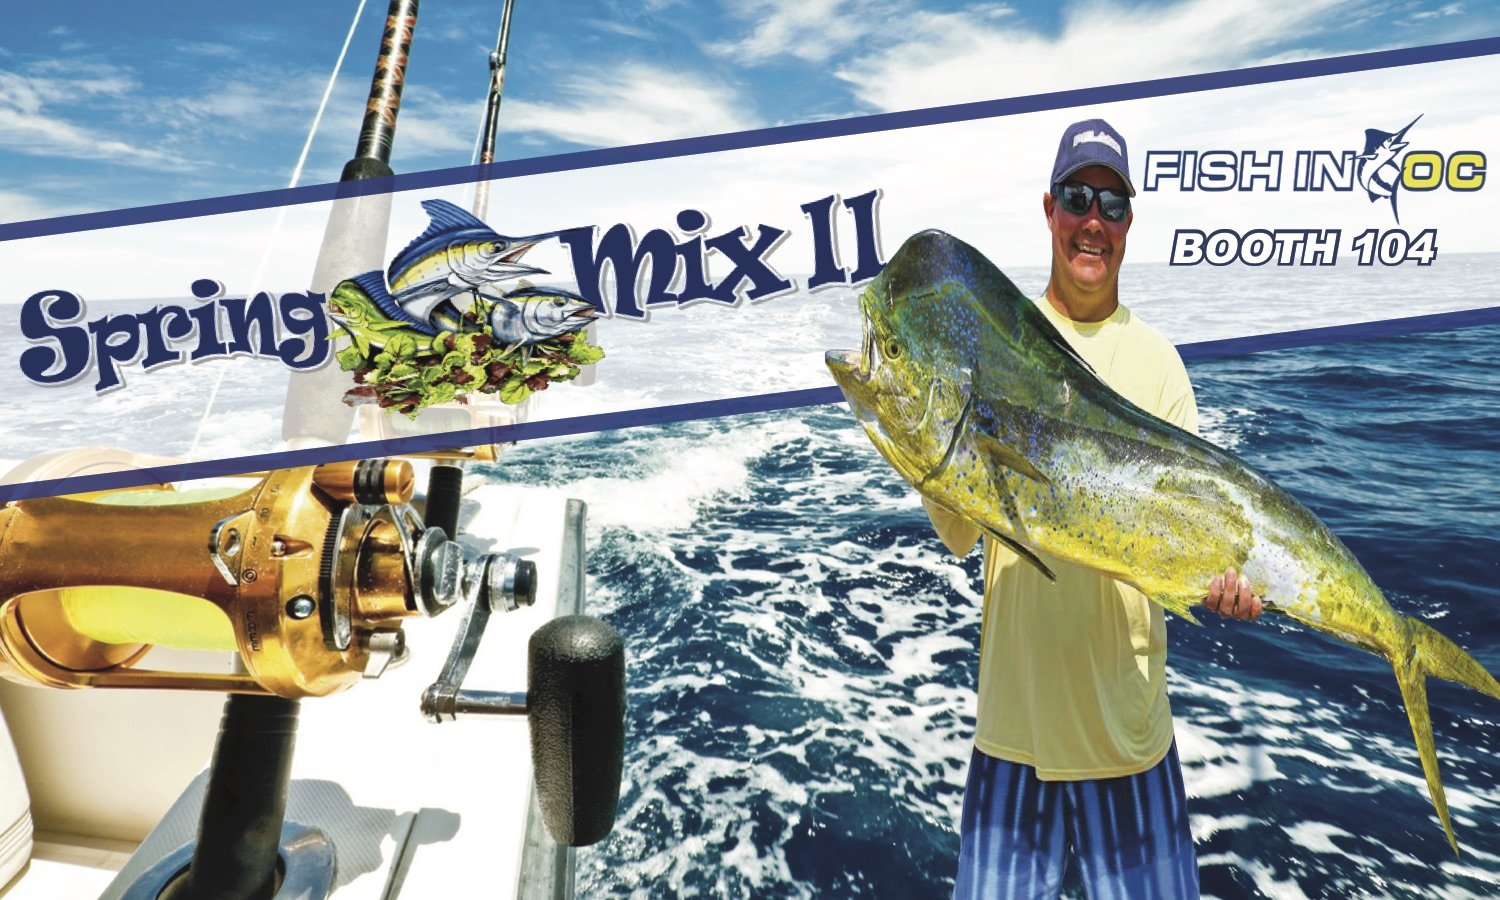 Offshore Fishing Trip Giveaway!!